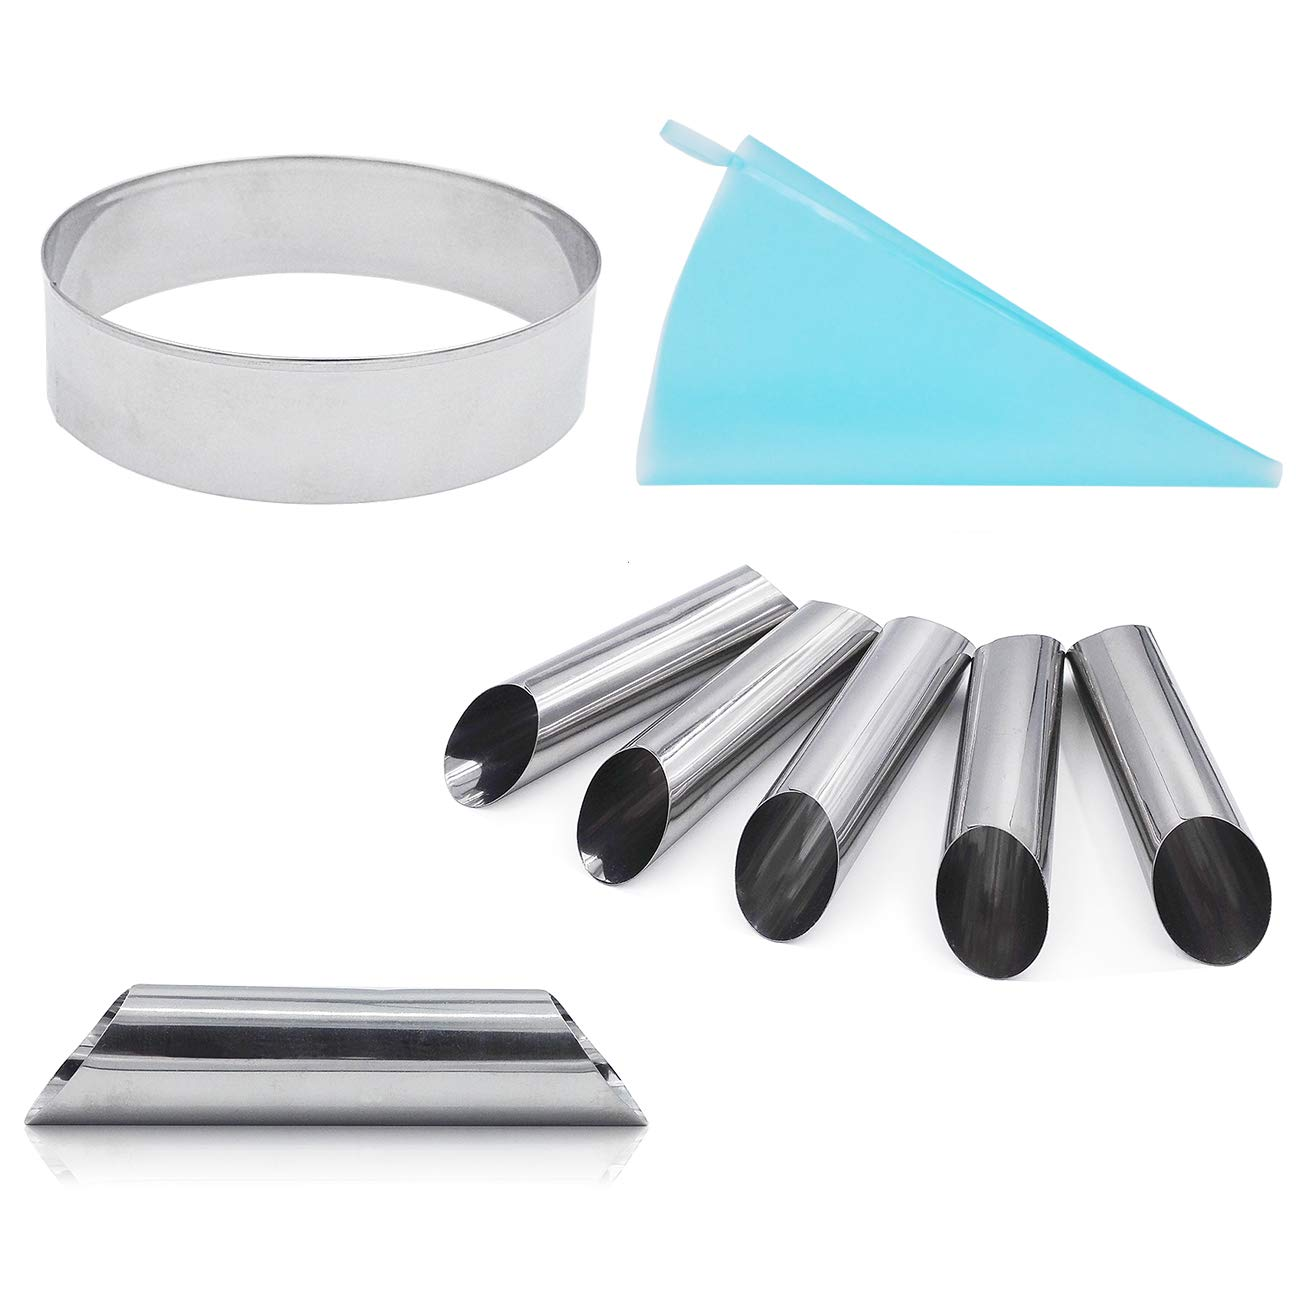 Cannoli Forms Pastry Roll Molds,Stainless Steel Cannoli Tubes,Set of 20 [Free Pastry Bag and Round Cookie cutter as Bonus]